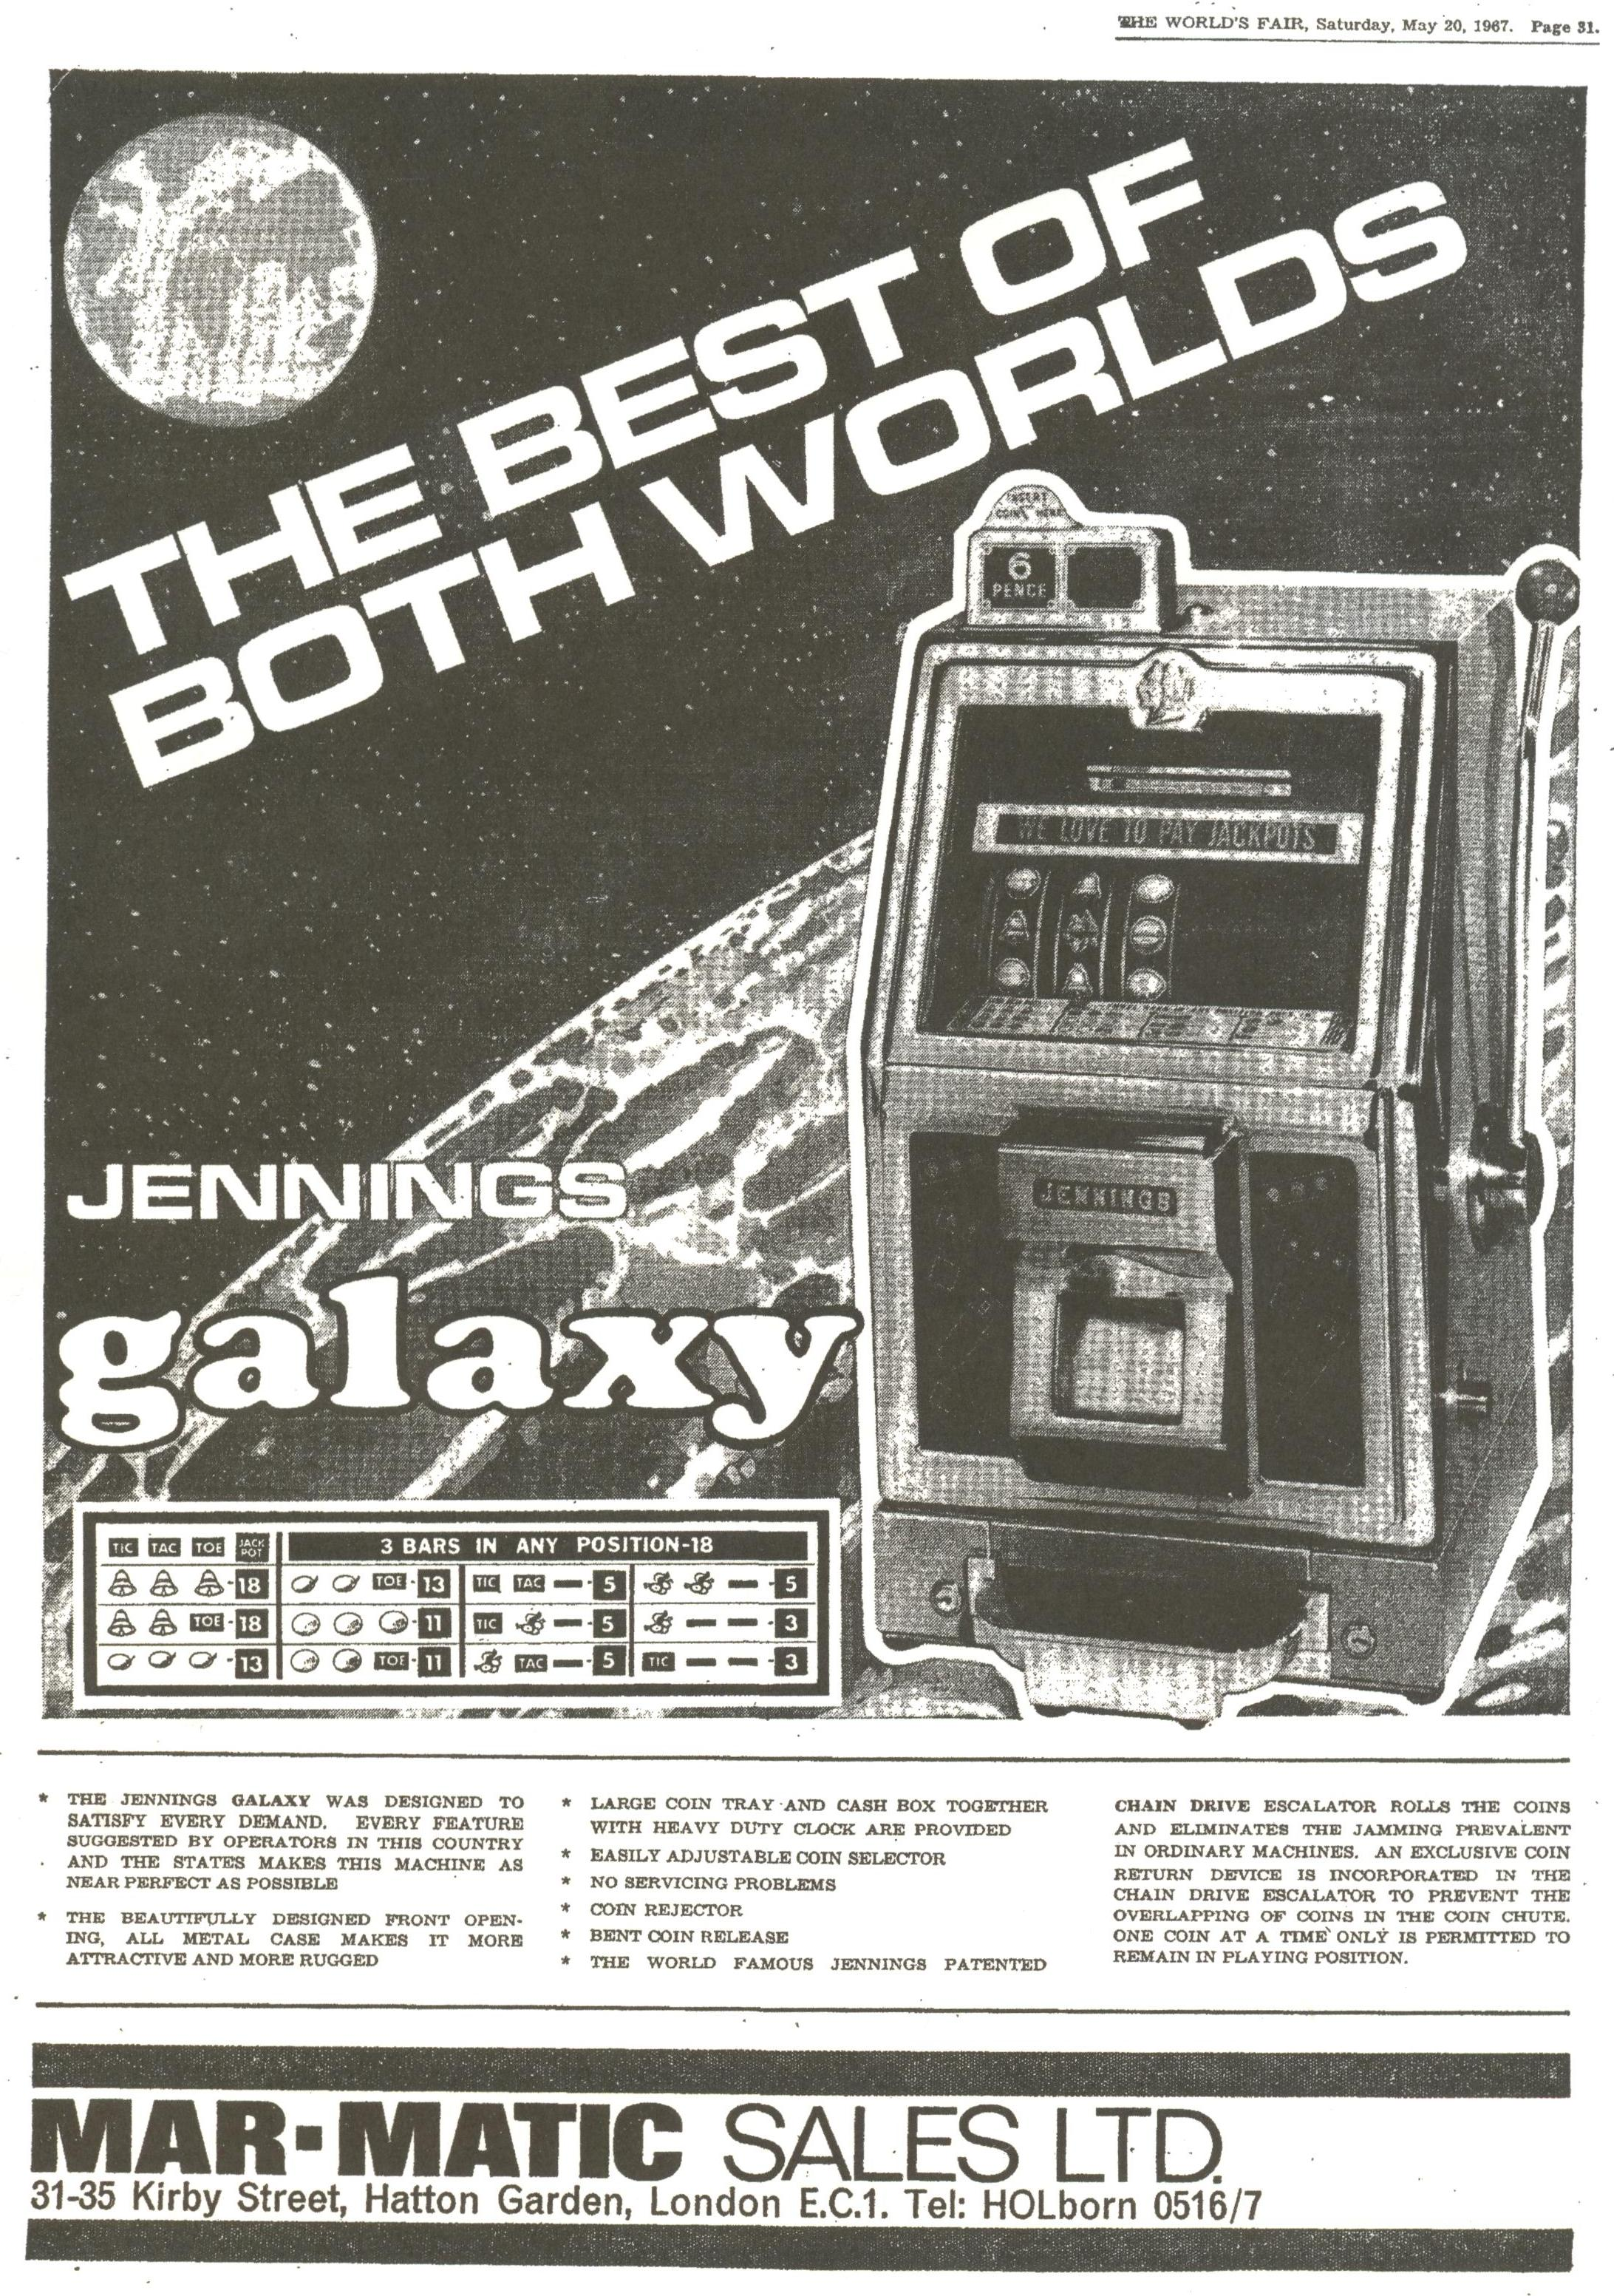 Jennings Galaxy U.K. Slot Machine add May 20th, 1967.jpg